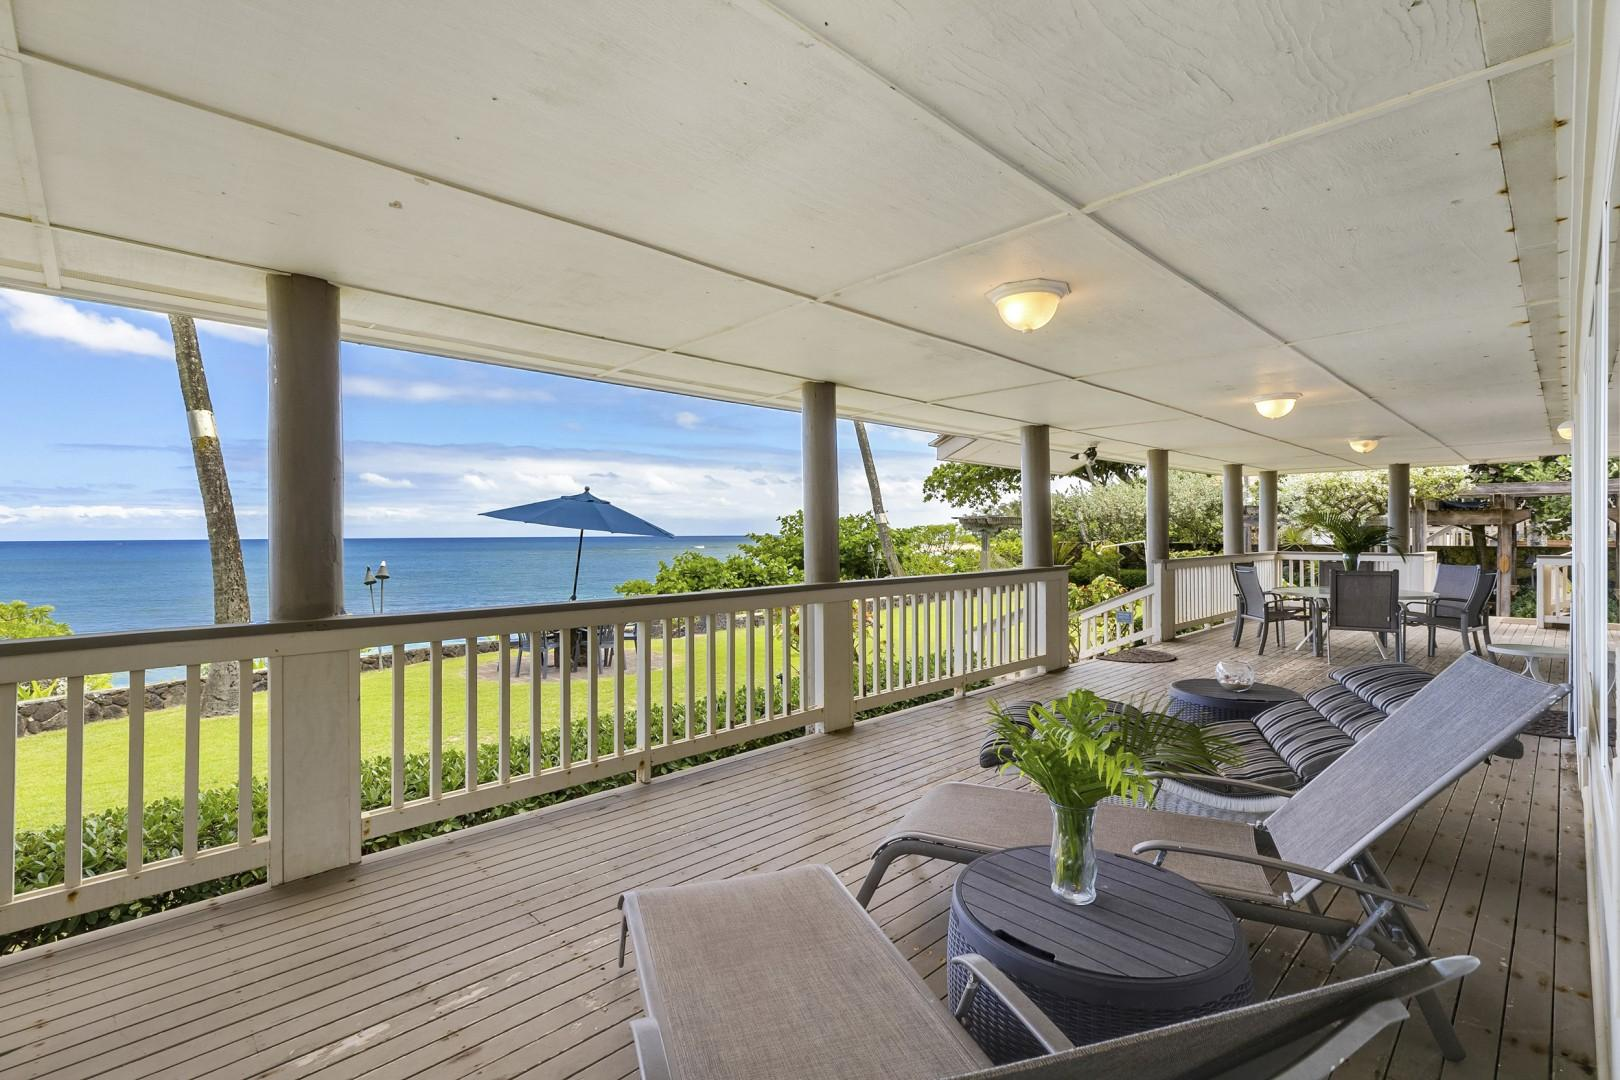 Spacious downstairs lanai area with panoramic views of the ocean.